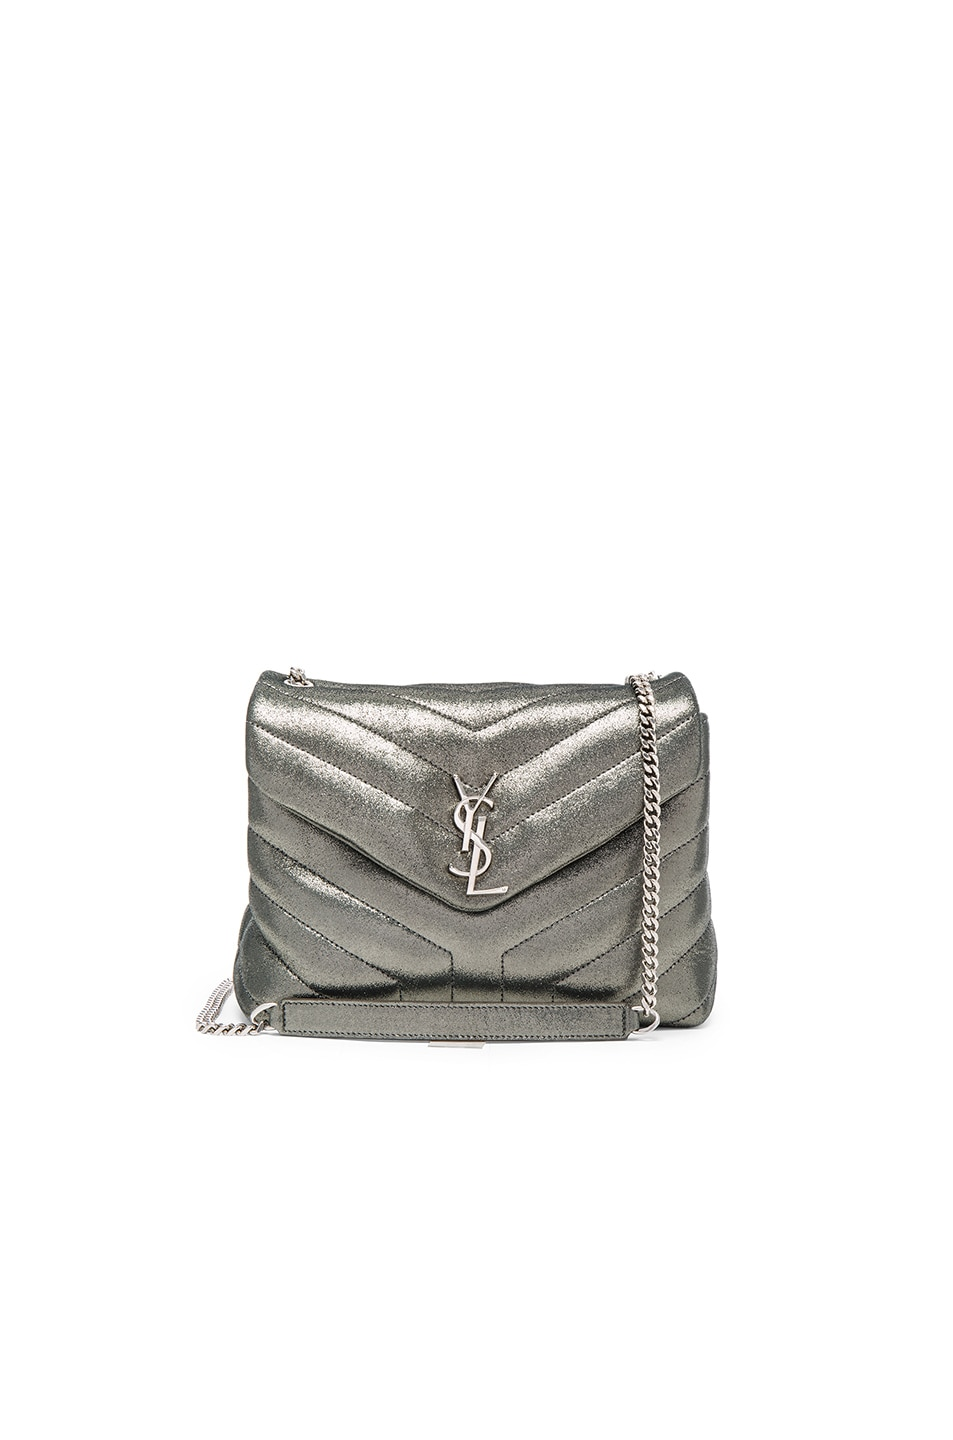 Image 1 of Saint Laurent Small Soft Monogramme Bag in Gunmetal